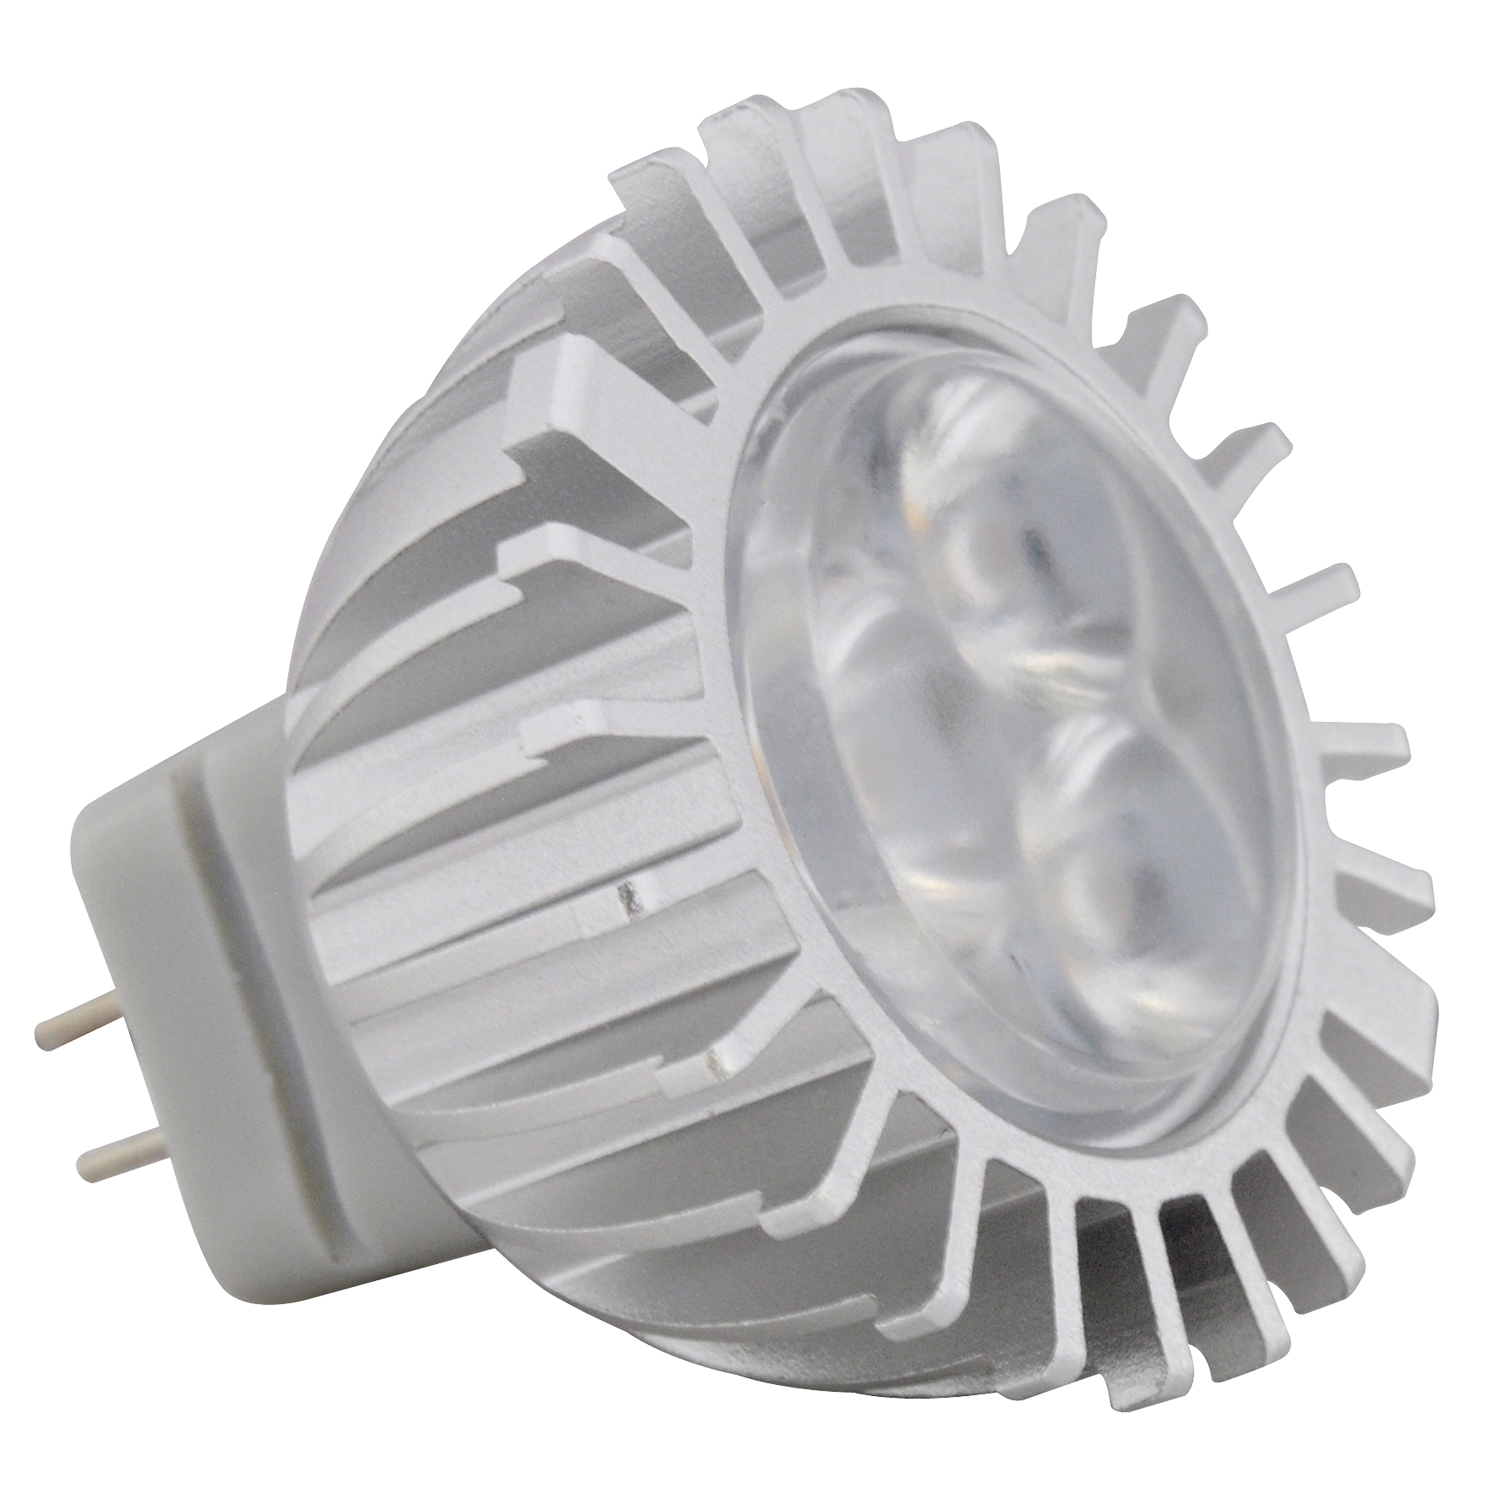 MR11FTD/827/LED 81093 LED MR11 3W 30DEG 2700K GU4 PROLED